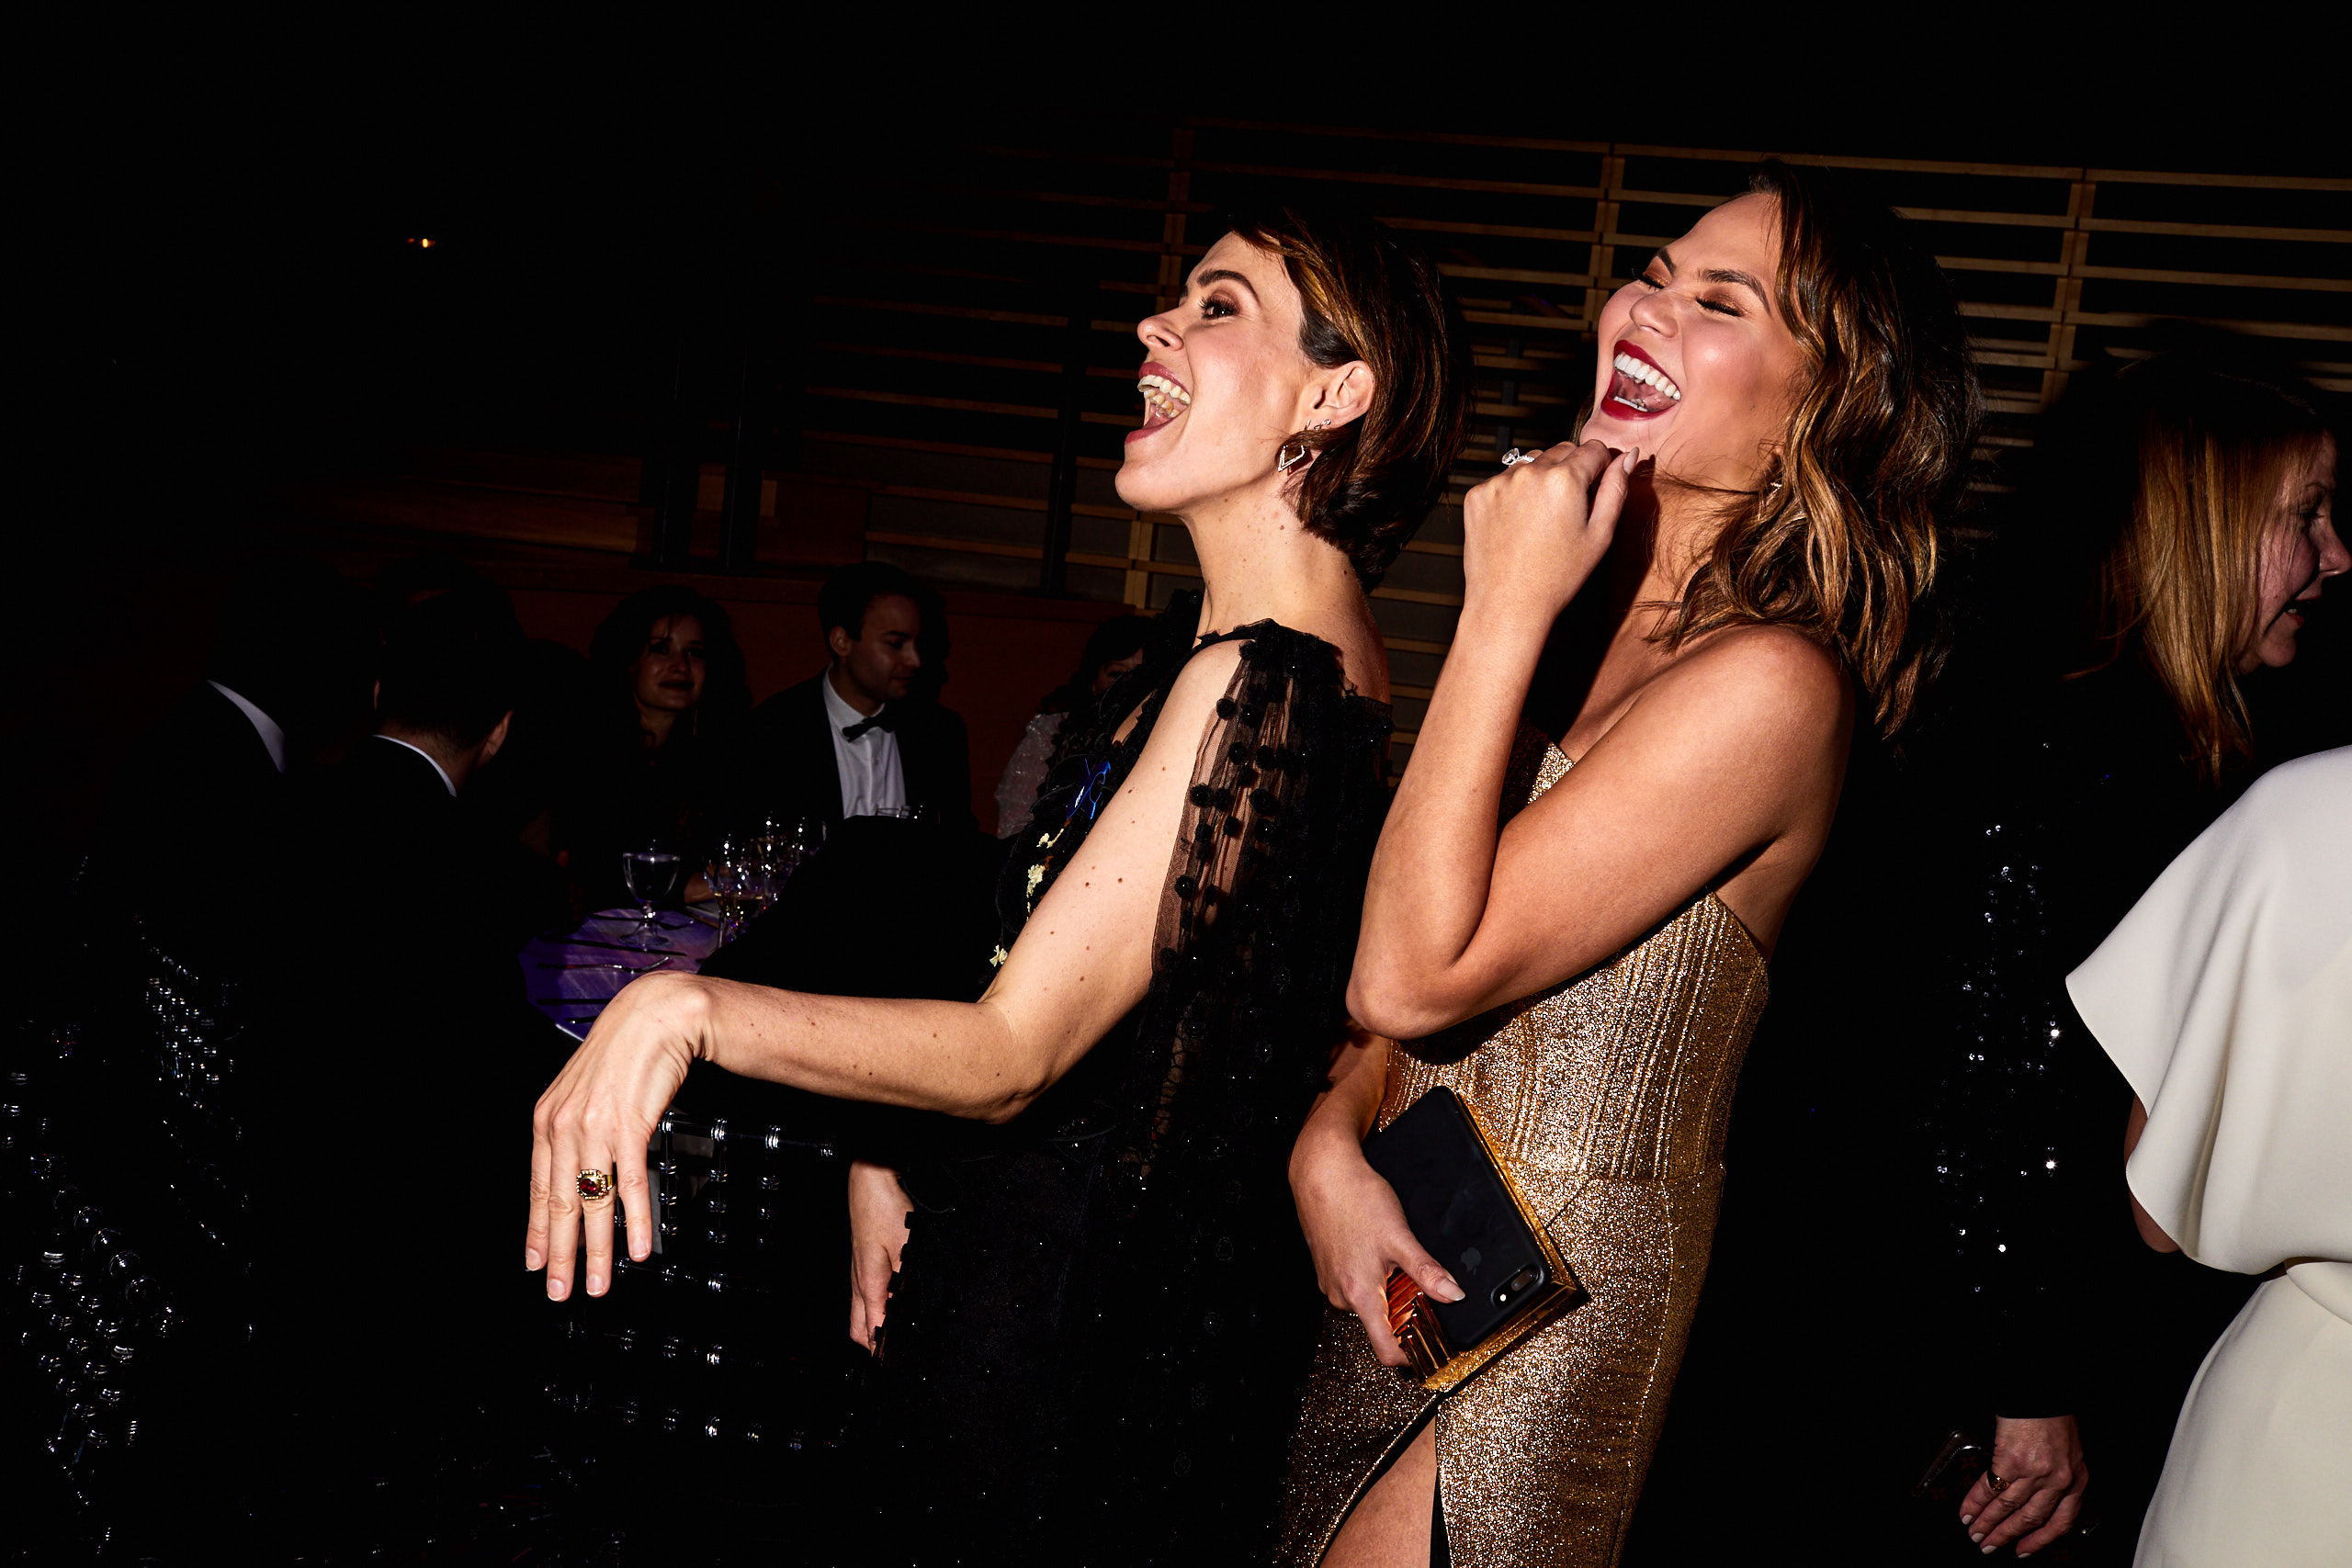 Sarah Paulson and Chrissy Teigen at the Time 100 Gala at Jazz at Lincoln Center on April 25, 2017 in New York City.